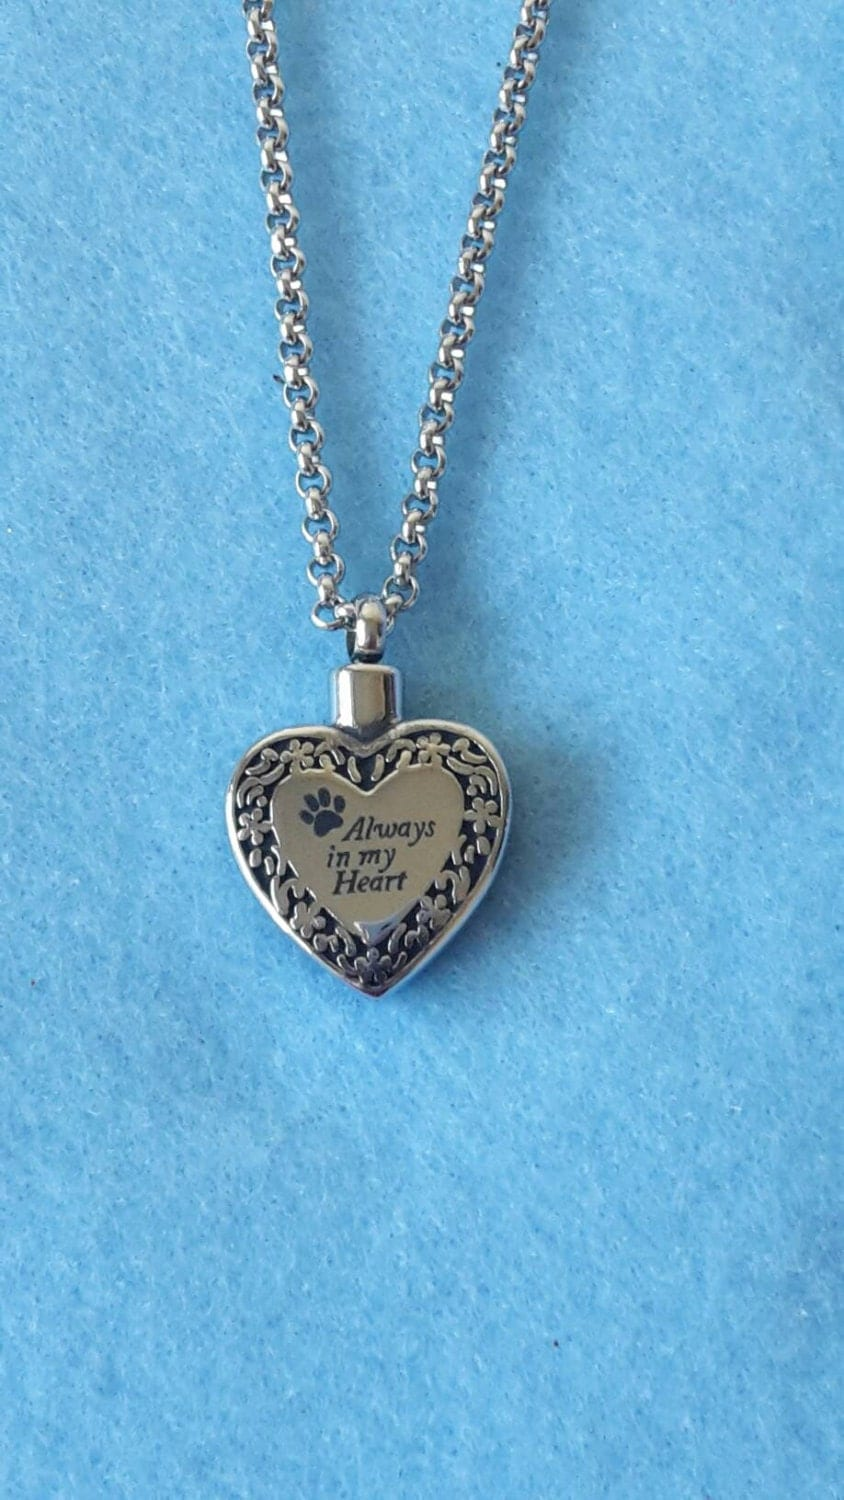 Pet urn heart necklace cremation jewelry ashes holder for Cremation jewelry for pets ashes